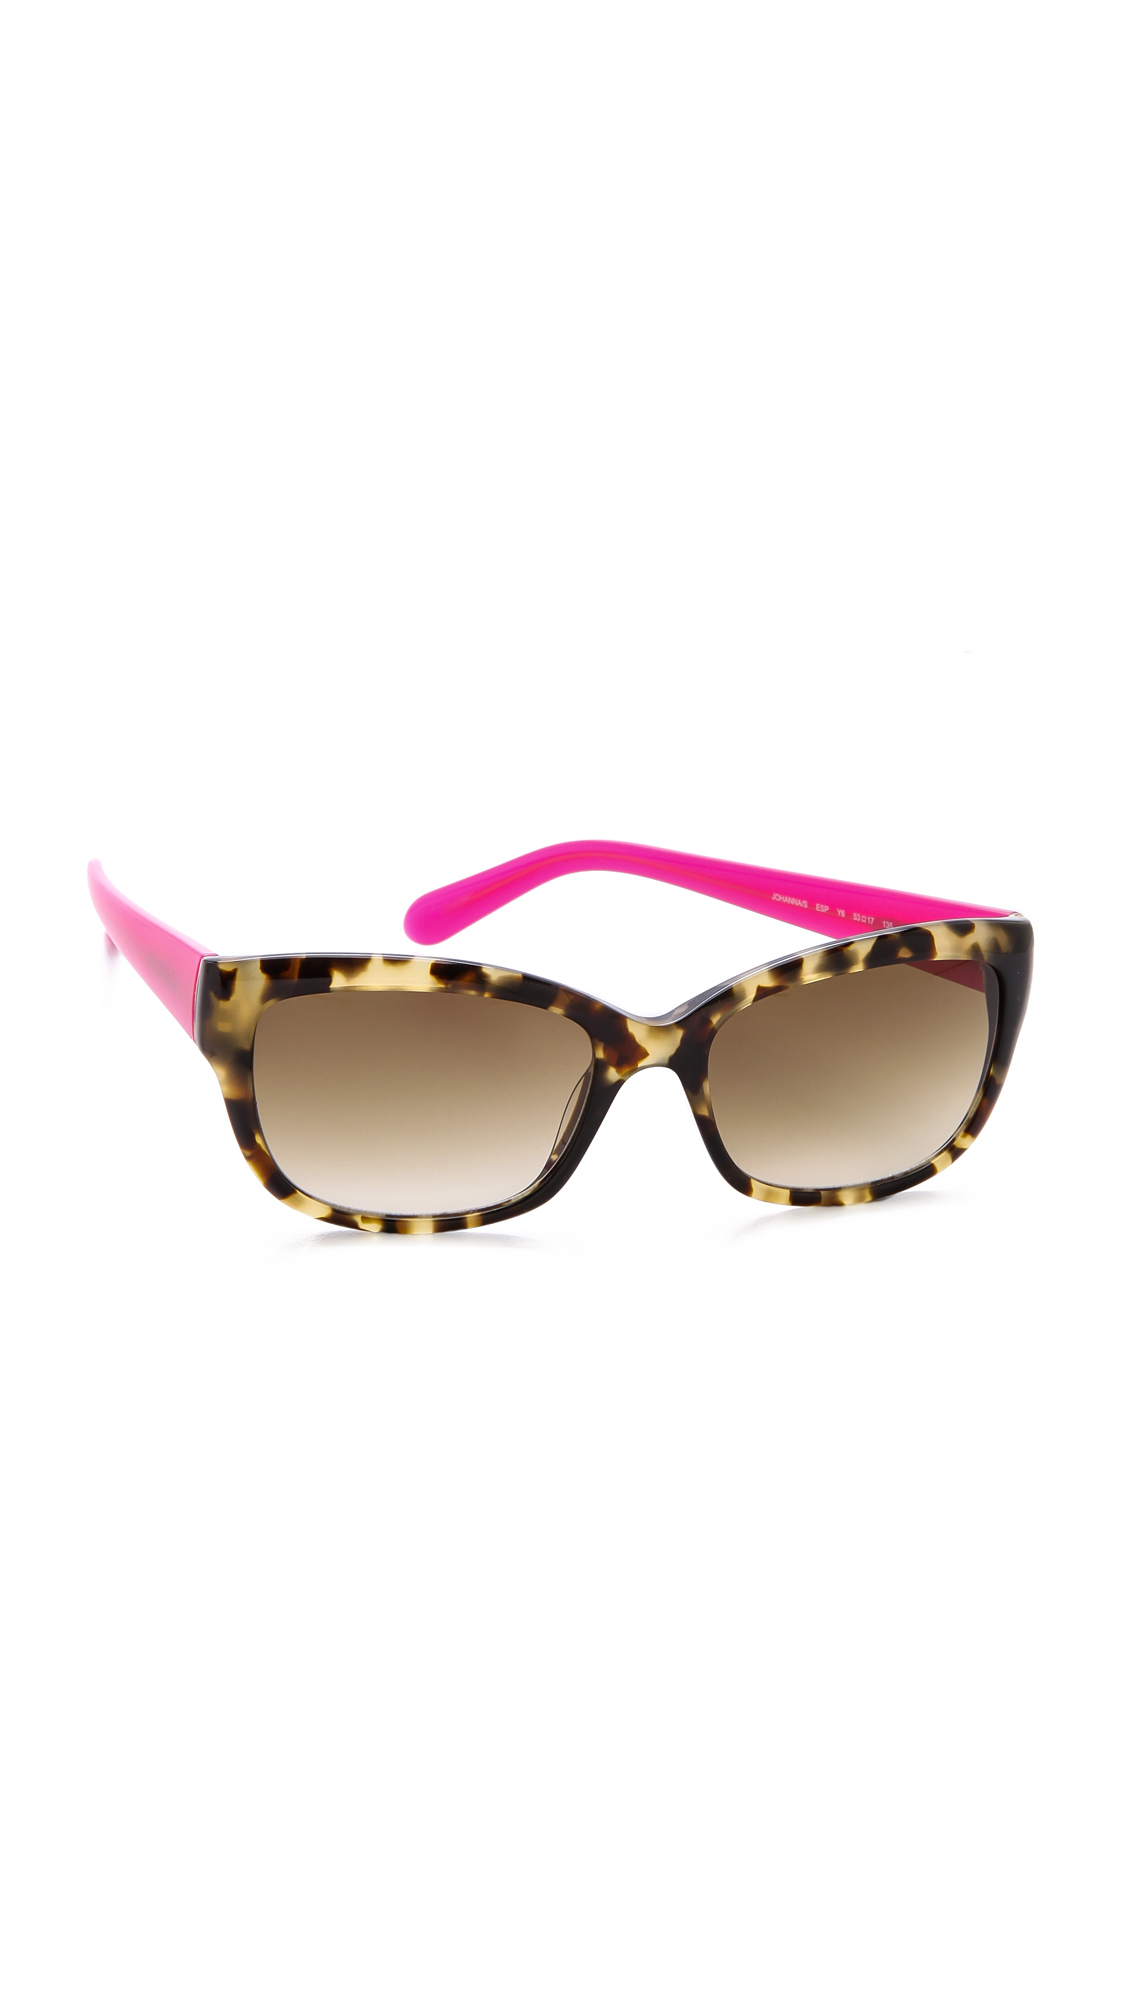 7384923f877 Lyst - Kate Spade Johanna Sunglasses in Pink